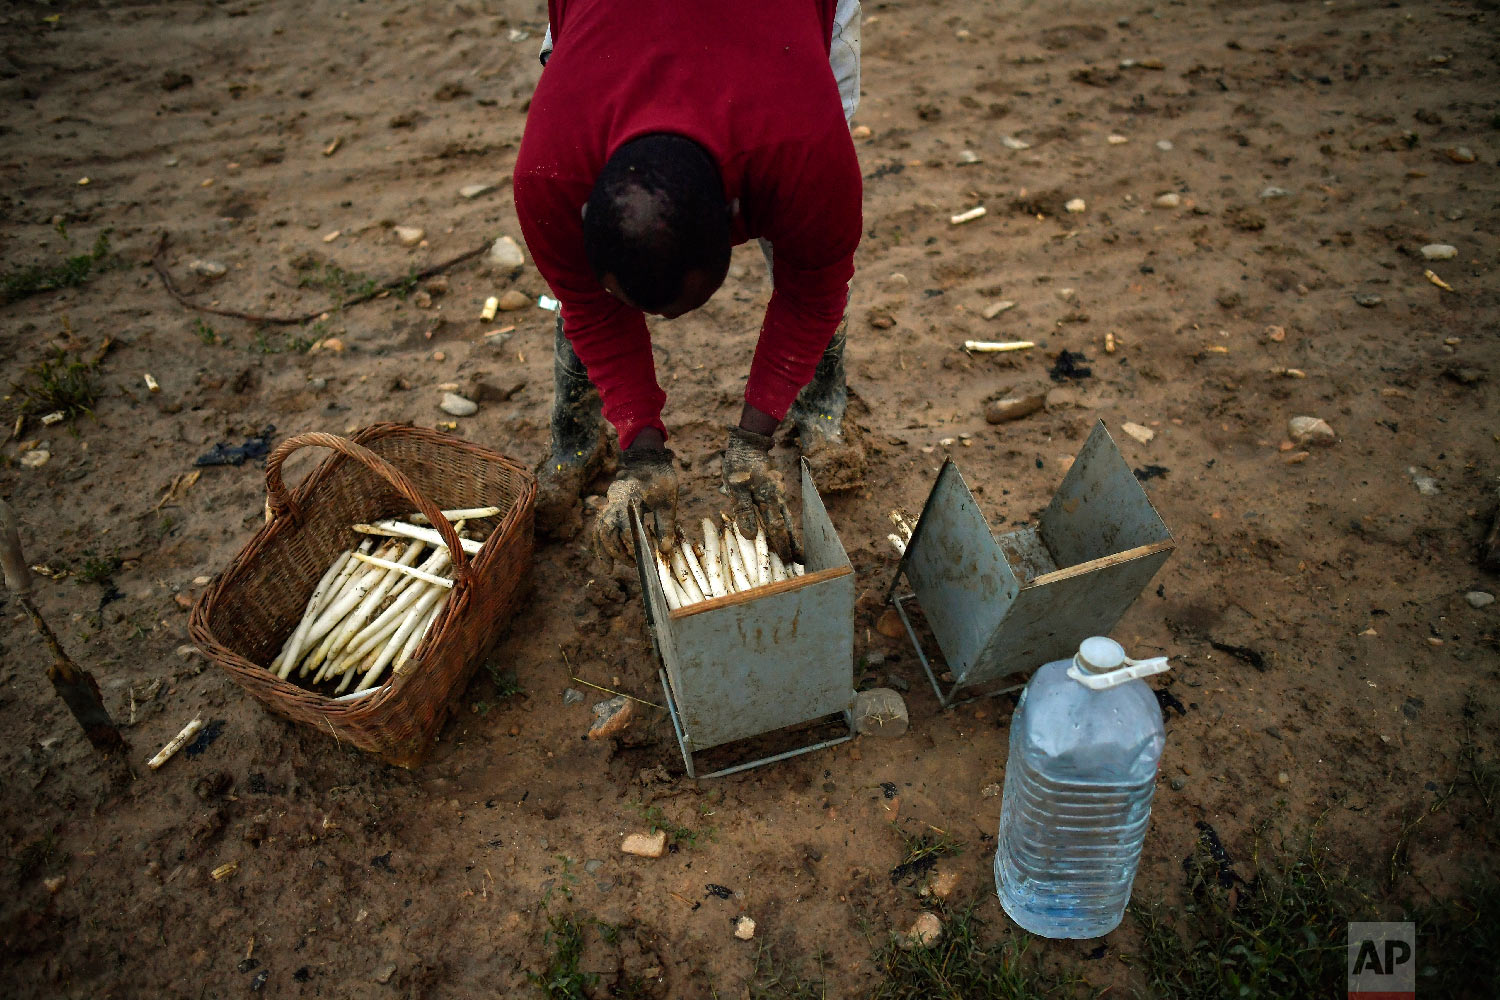 Temporary worker Evin, 25, from Cameroon, collects white asparagus from the field early morning, in Caparroso, around 85 km (52 miles) from Pamplona, northern Spain on Thursday, May 31, 2018. (AP Photo/Alvaro Barrientos)